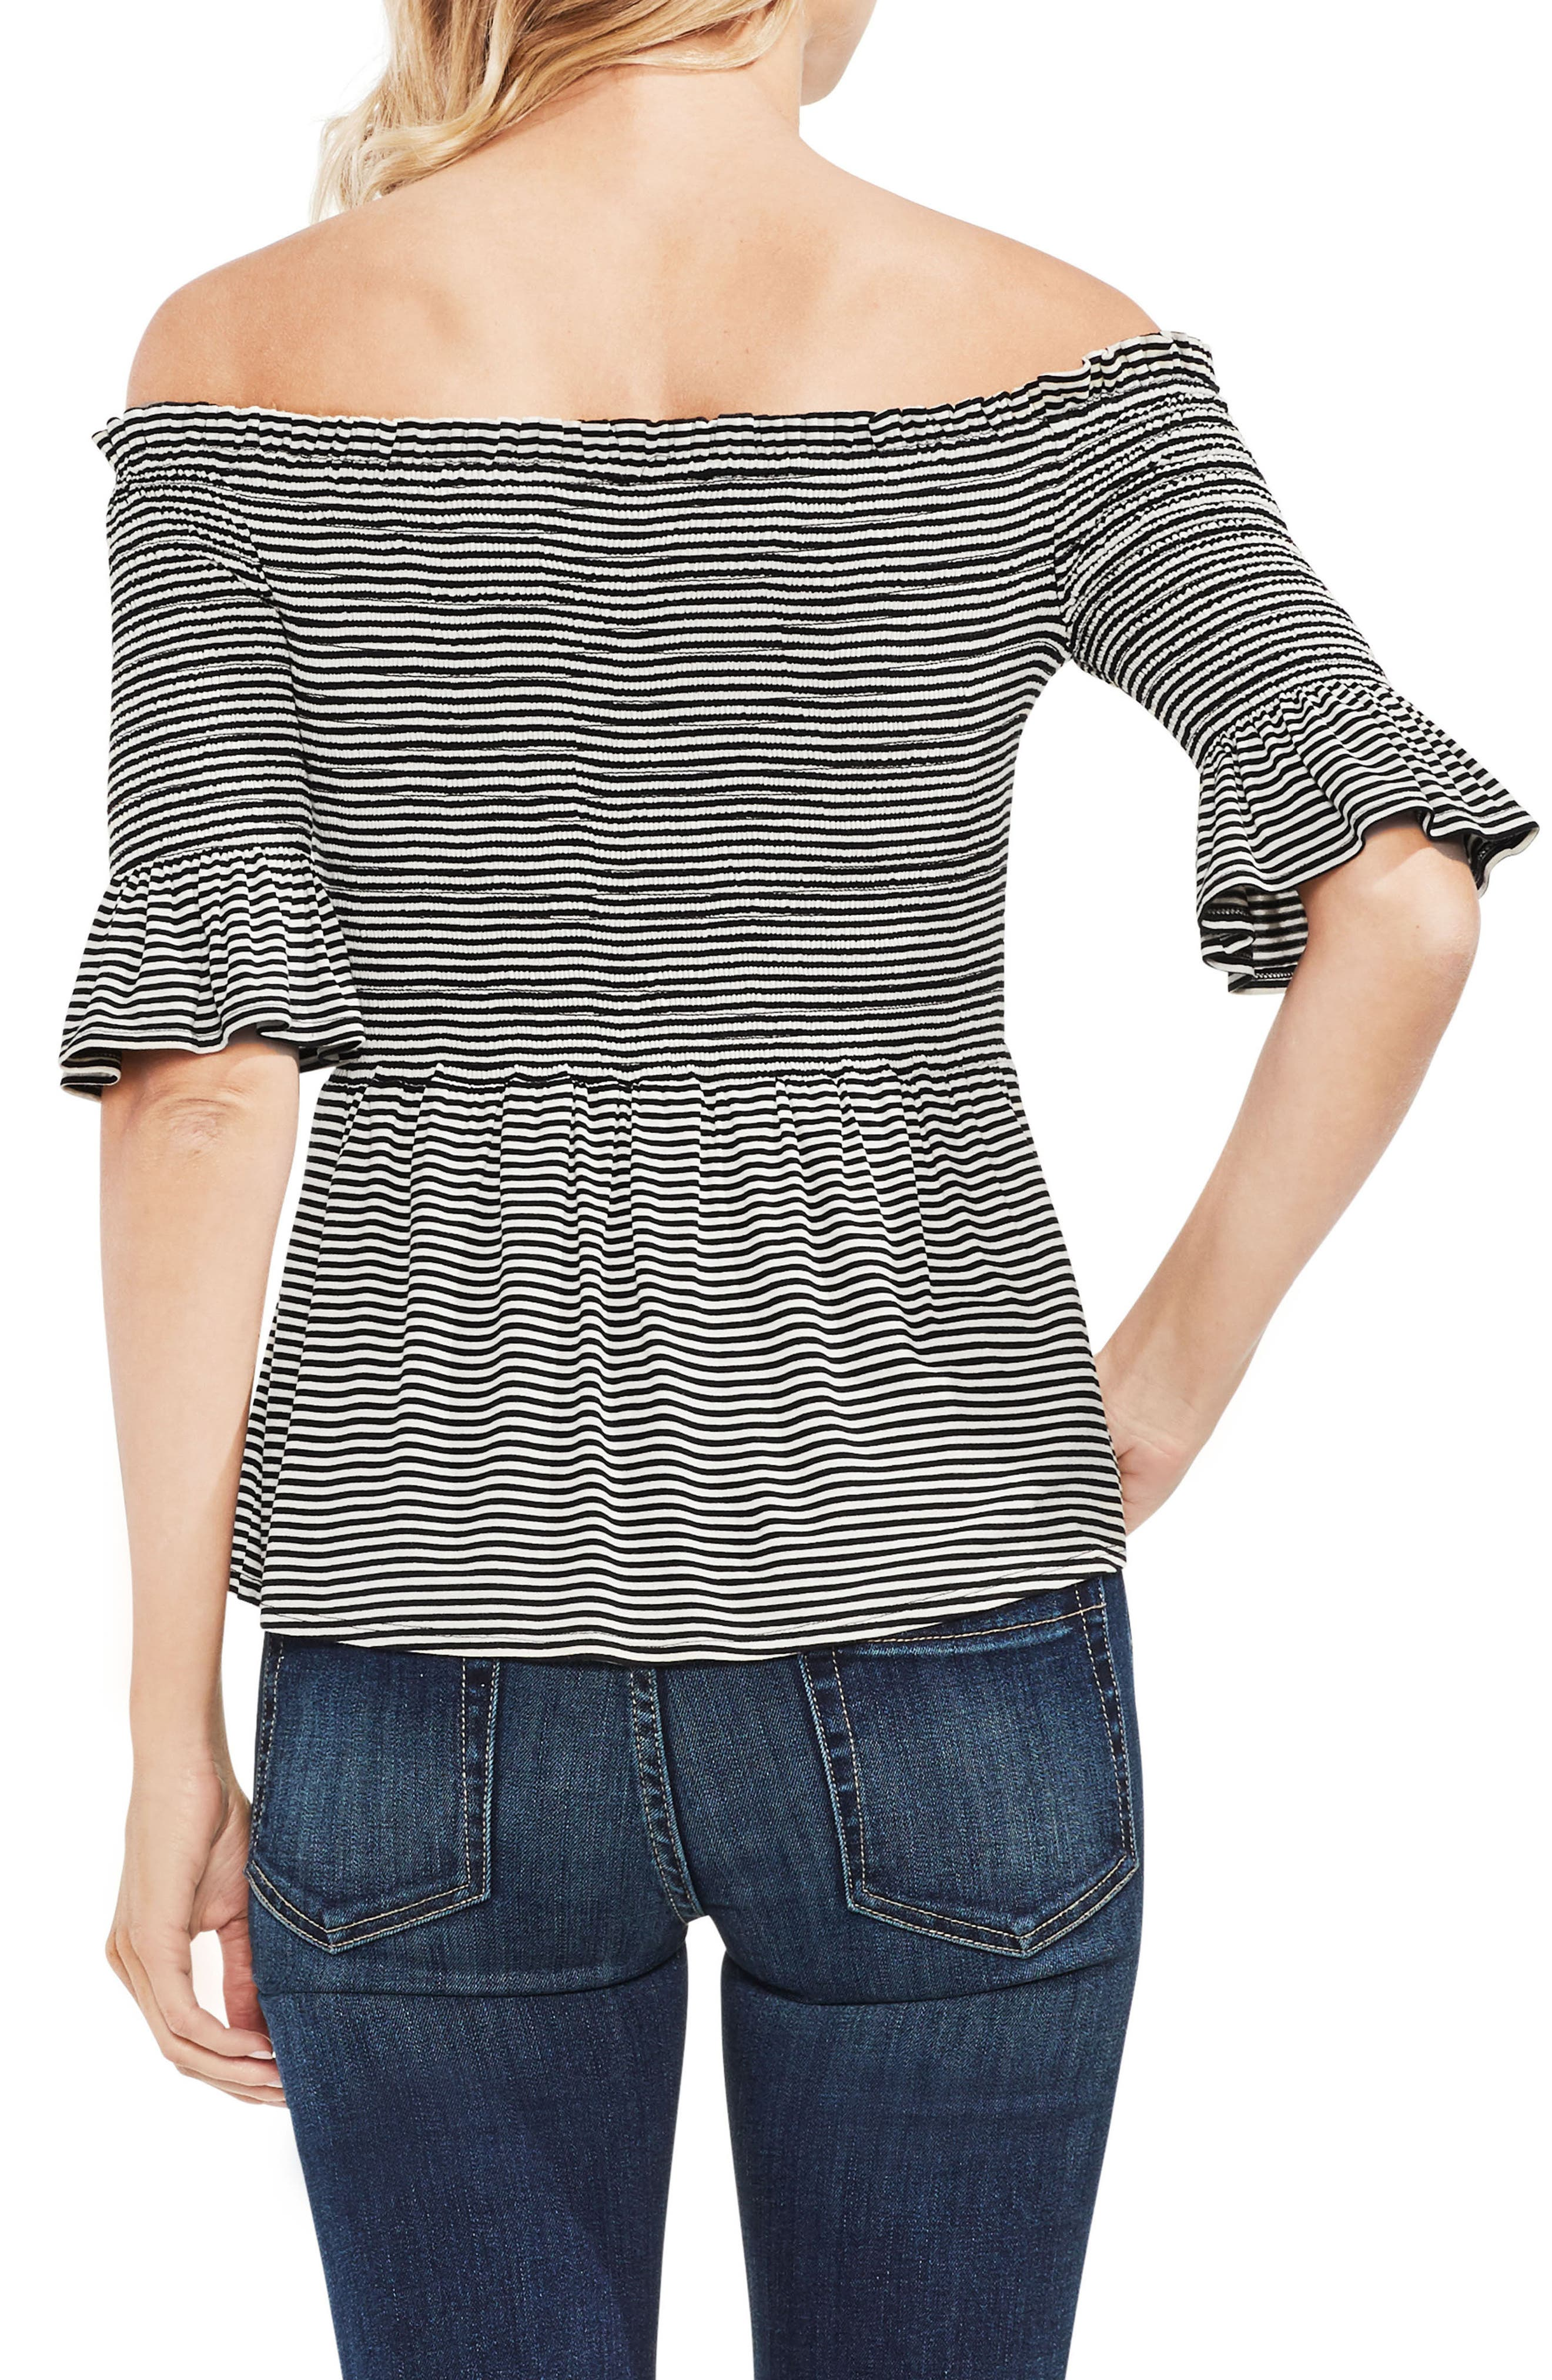 VINCE CAMUTO,                             Off The Shoulder Striped Top,                             Alternate thumbnail 2, color,                             001